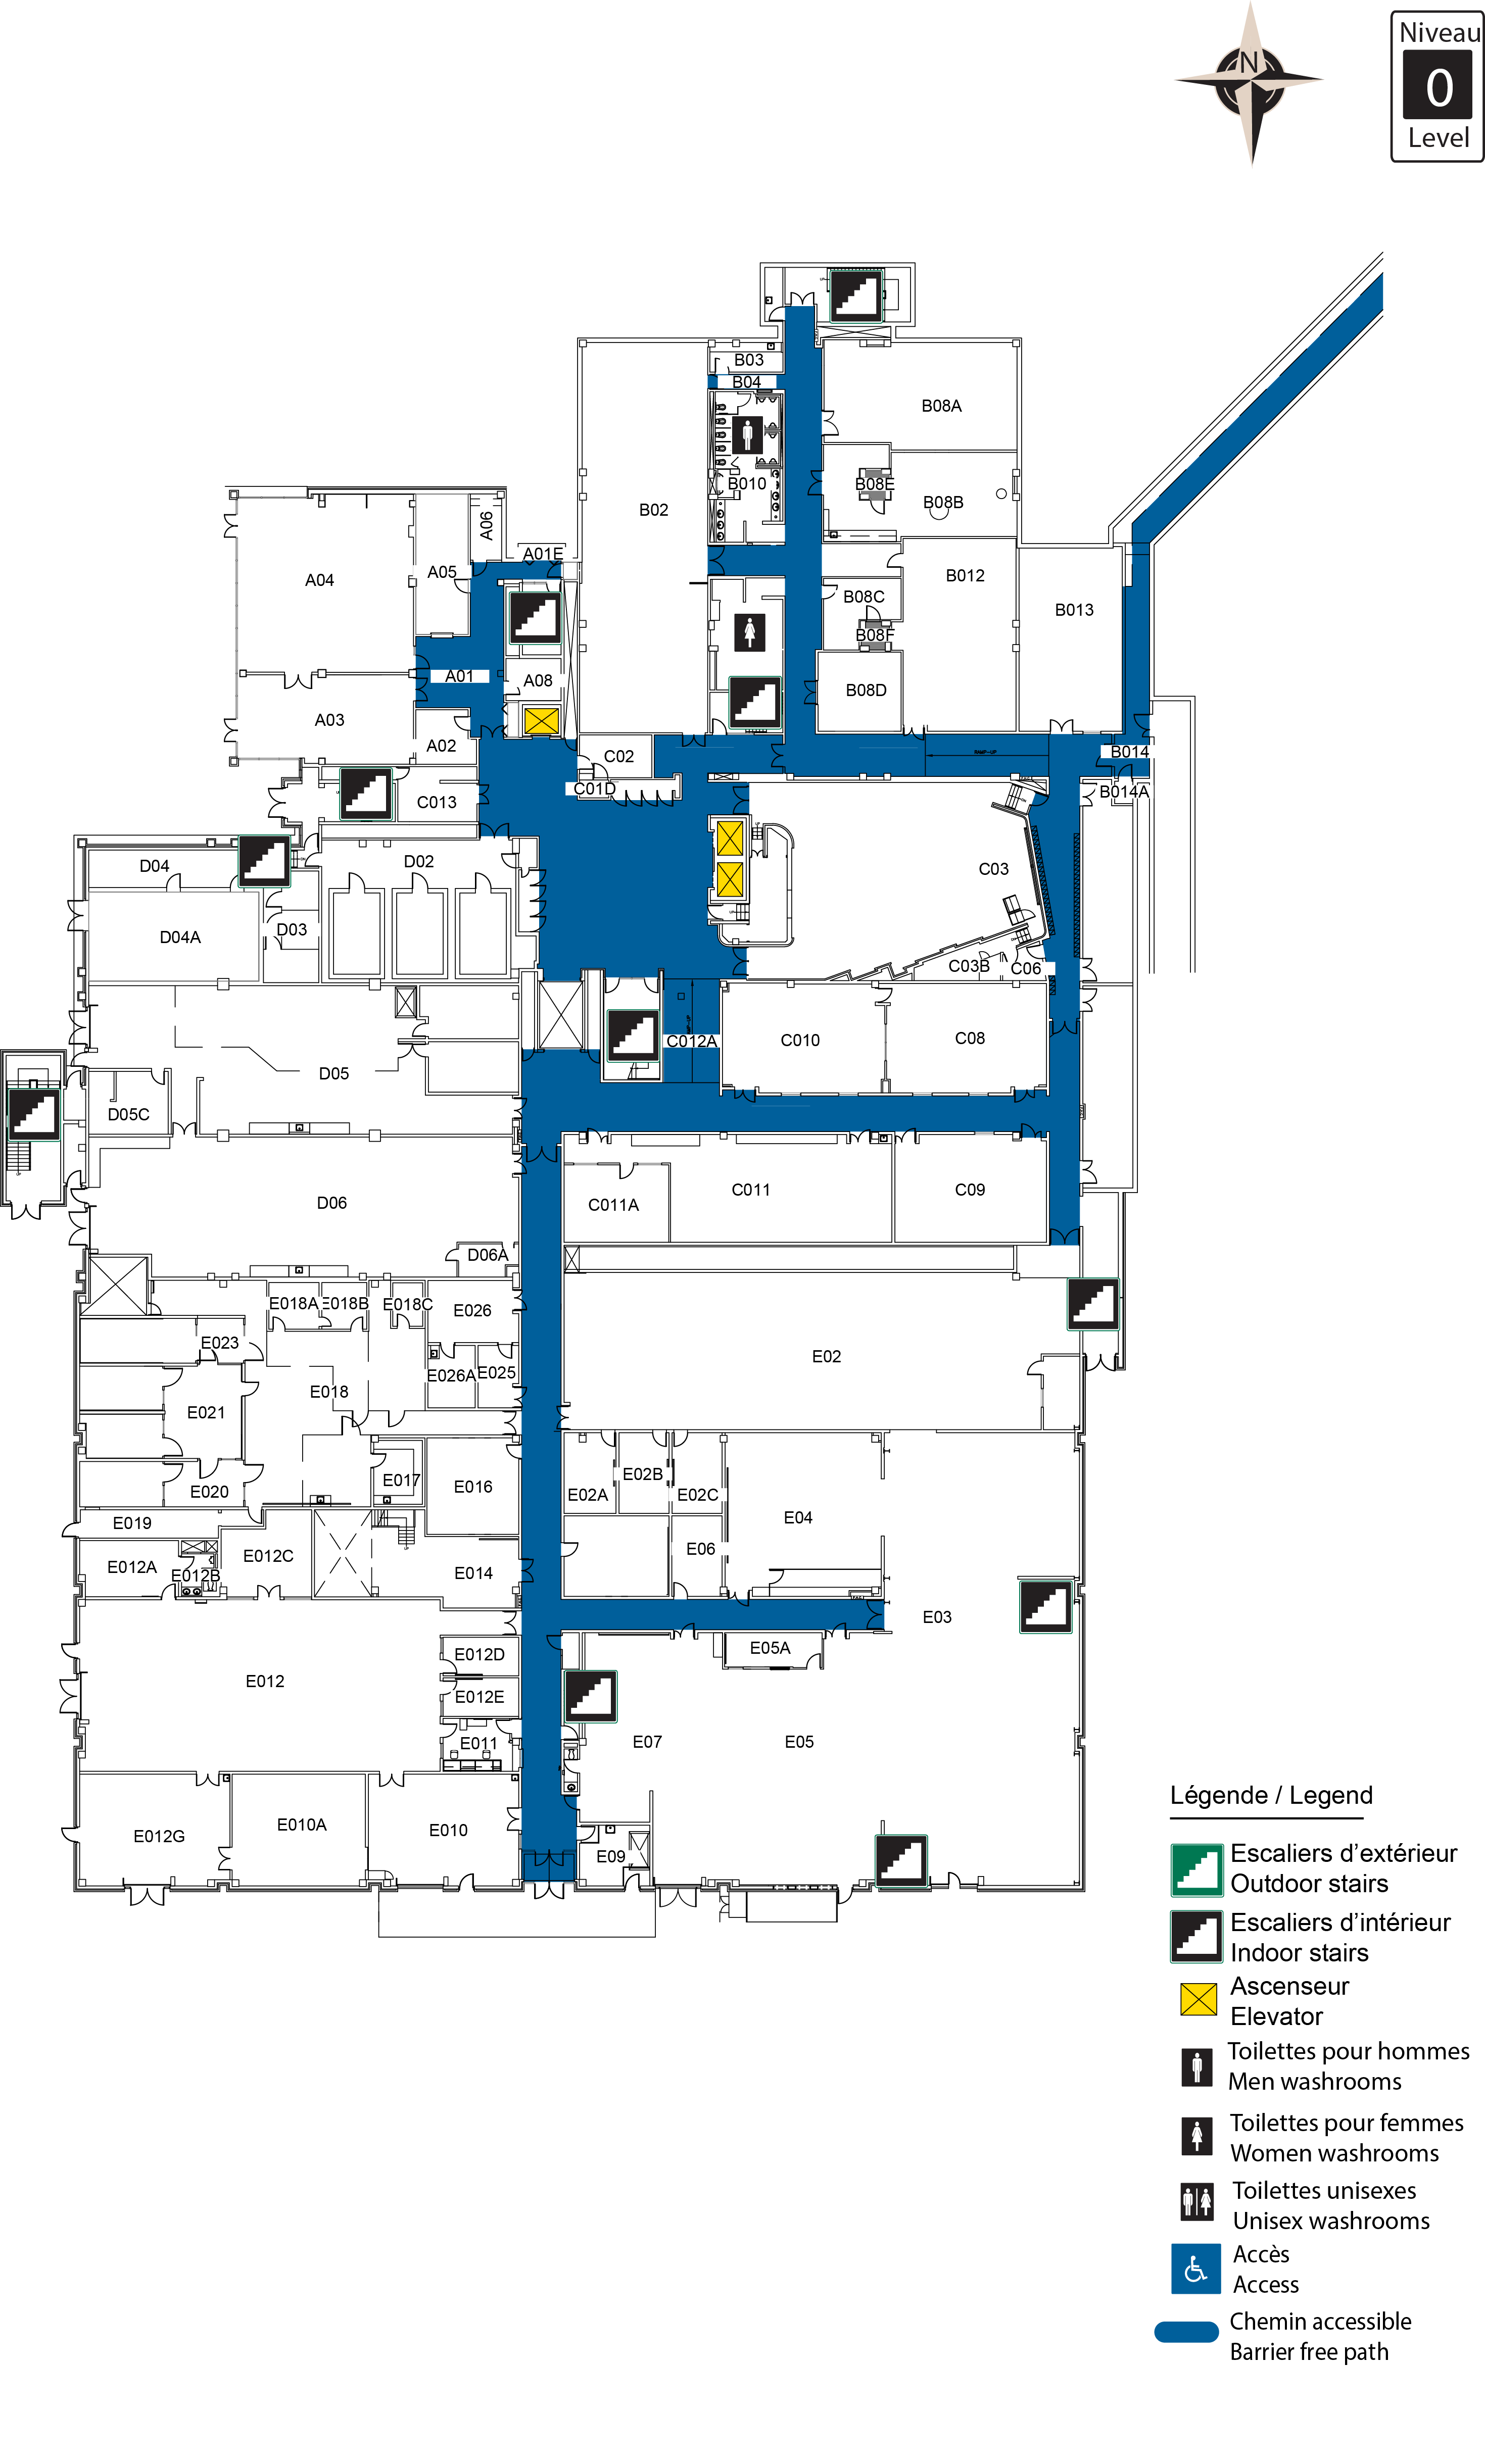 Accessible map - Cby 0